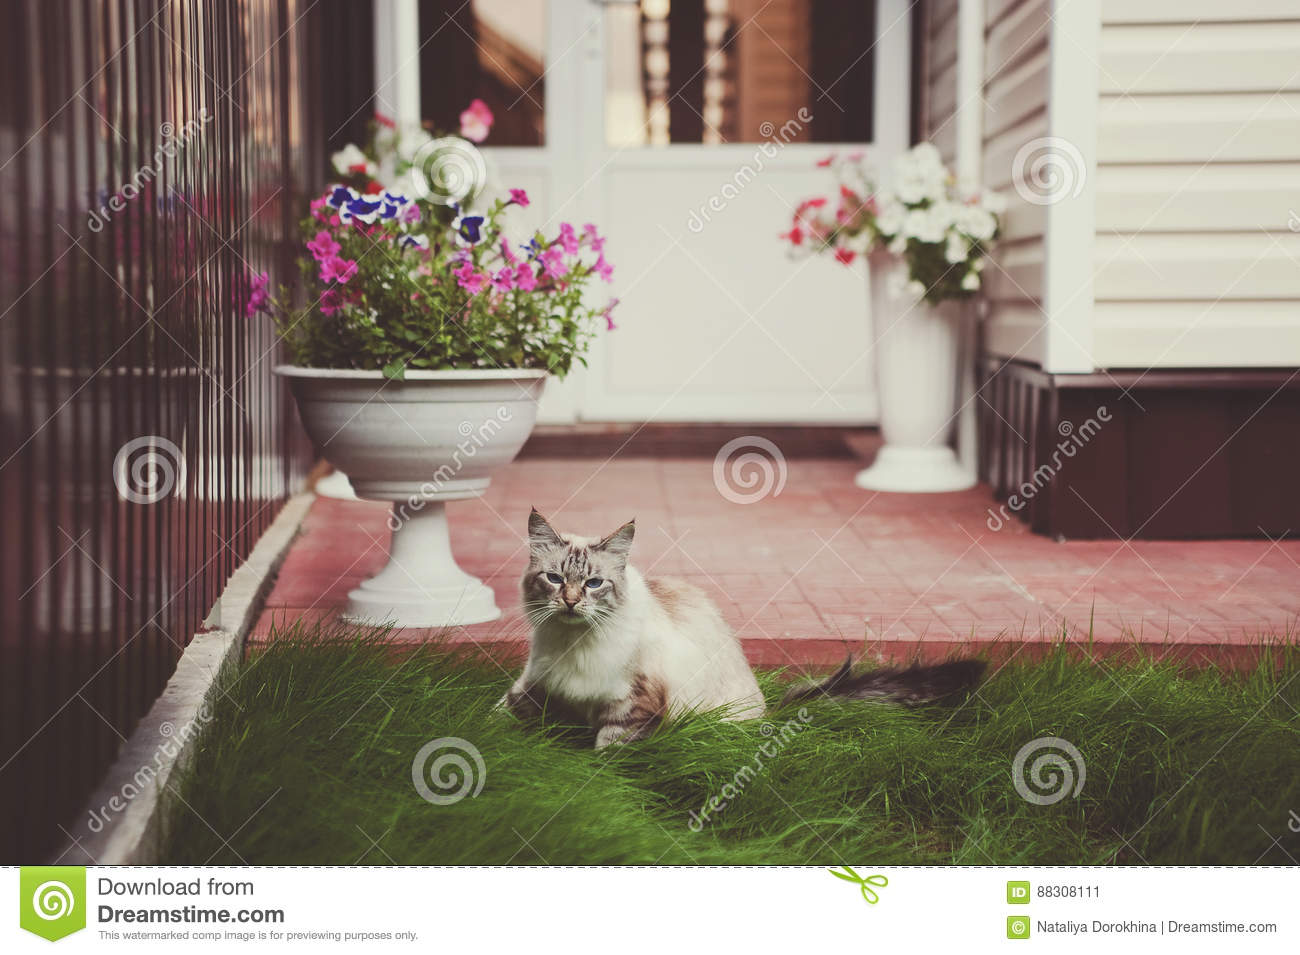 Beautiful Siamese with blue eyes cat with a funny face walking on the green grass